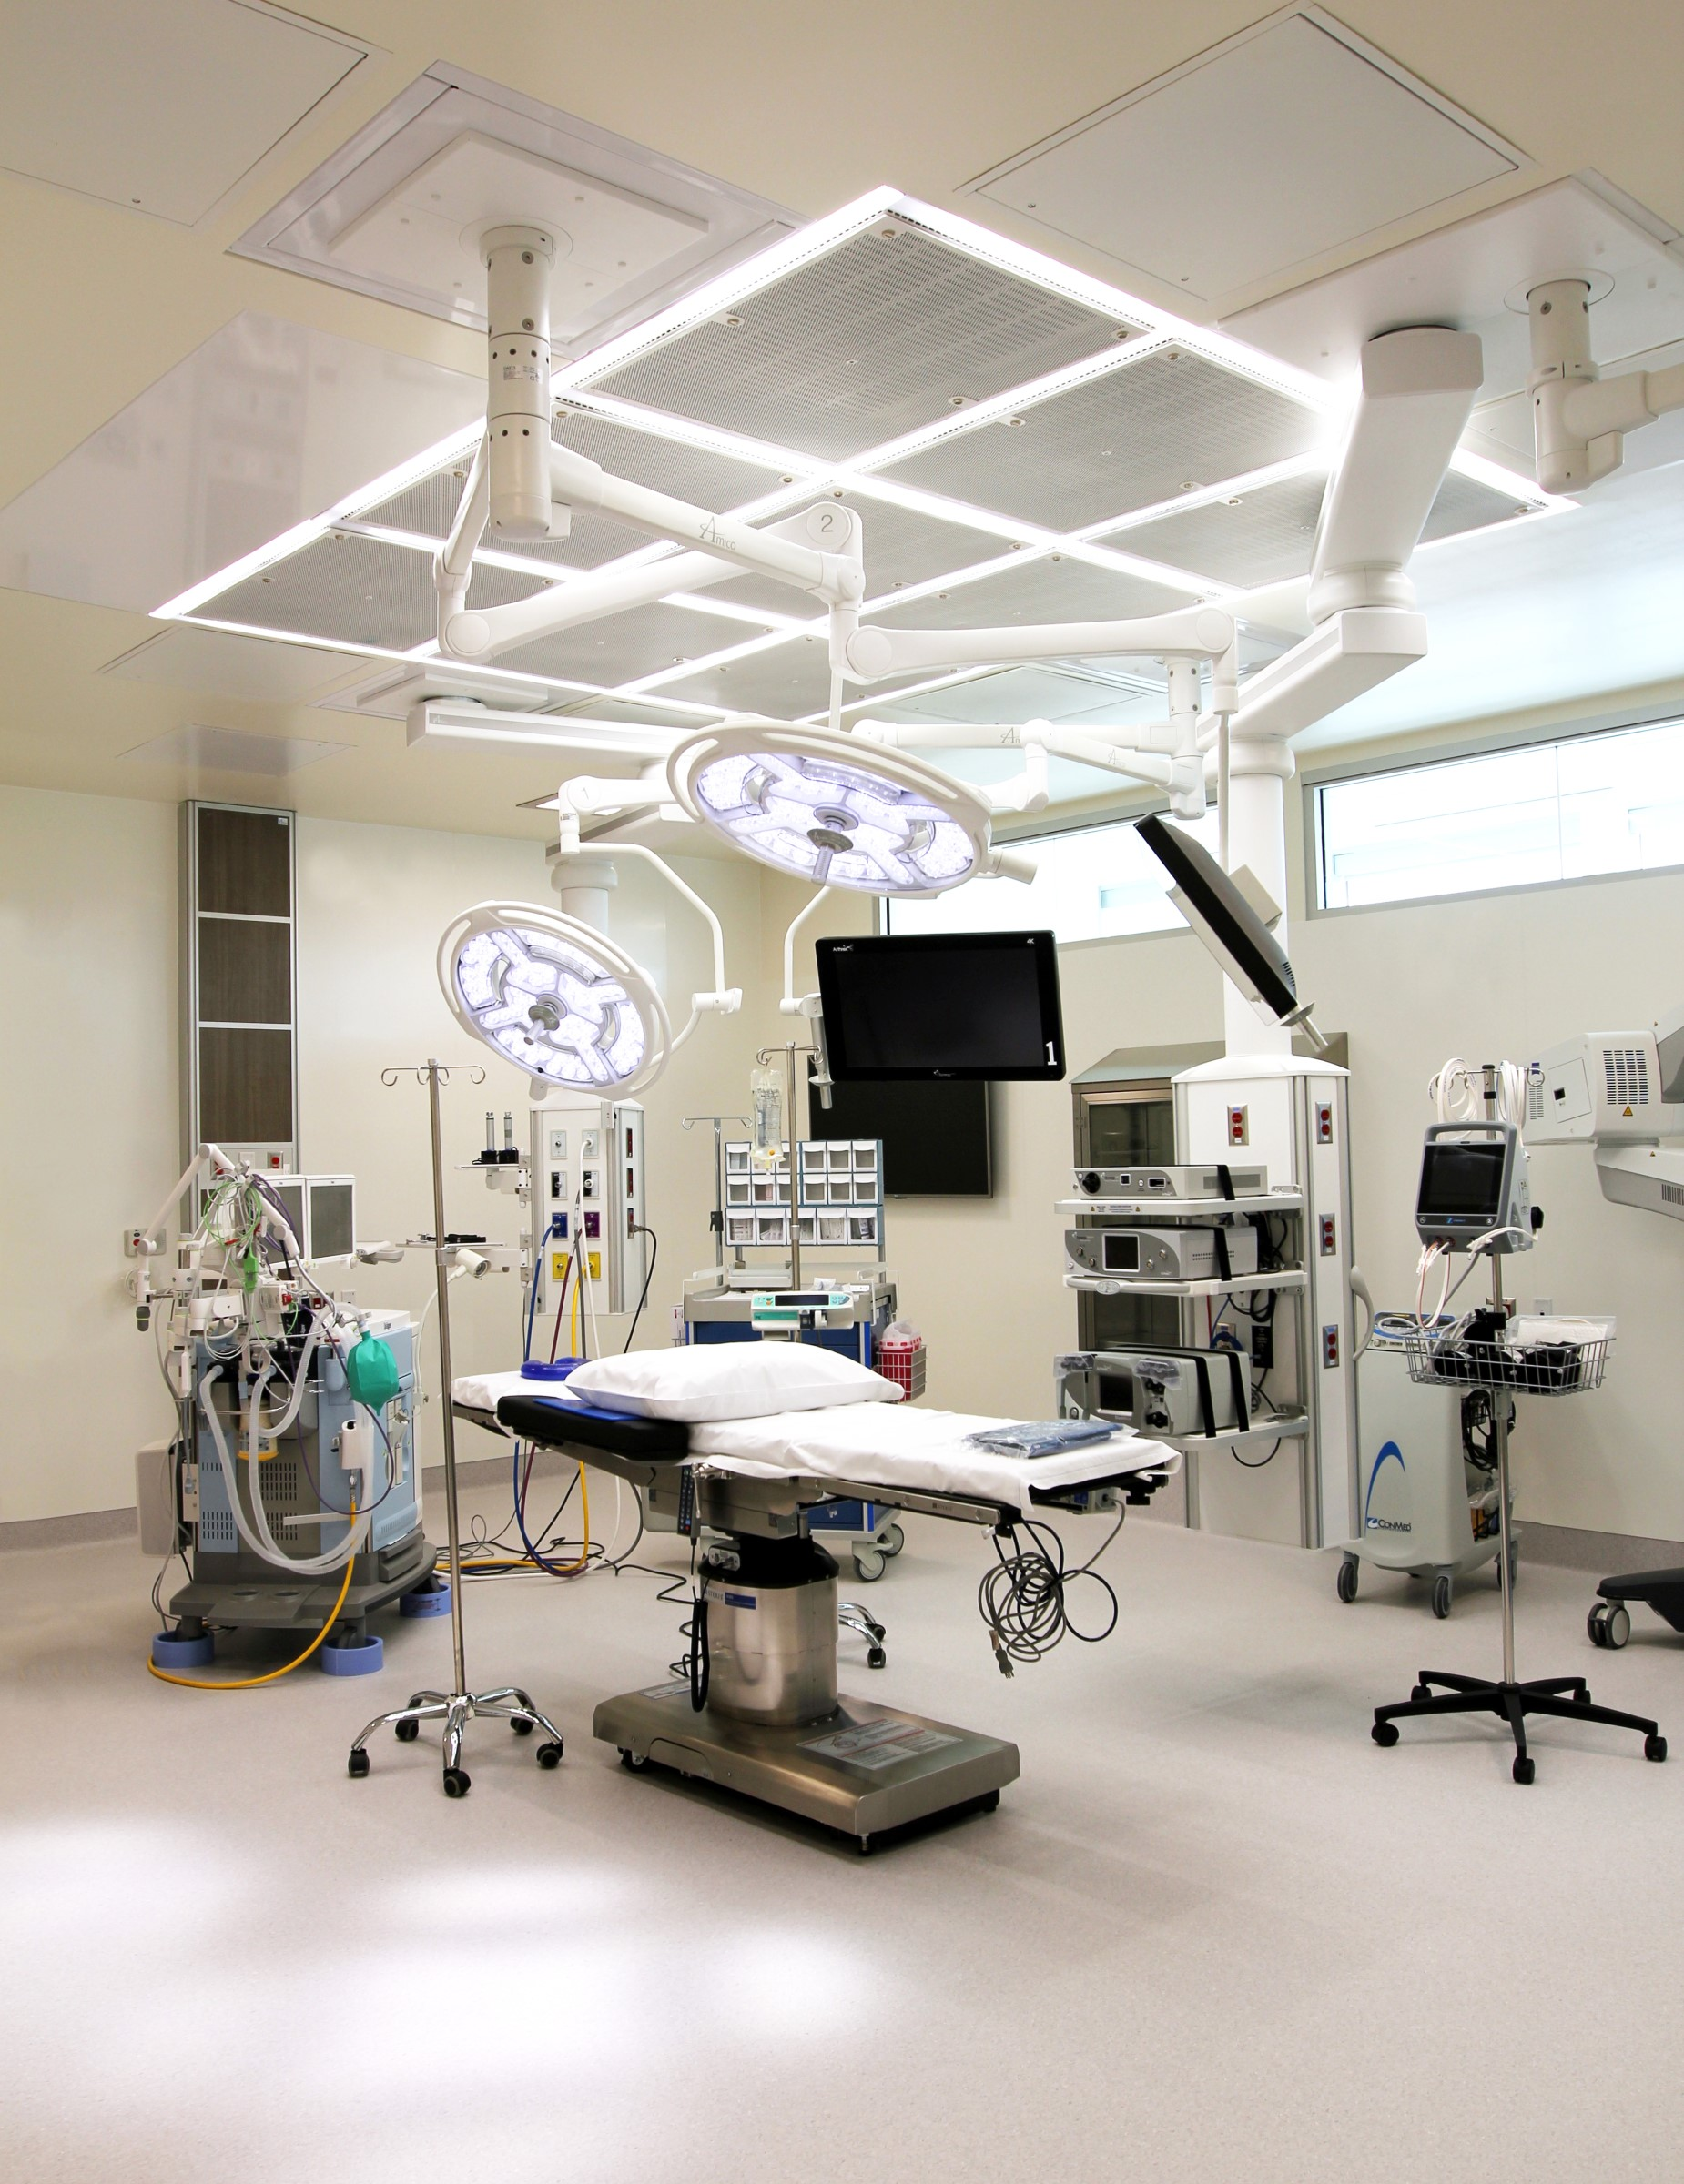 Operating room ceiling